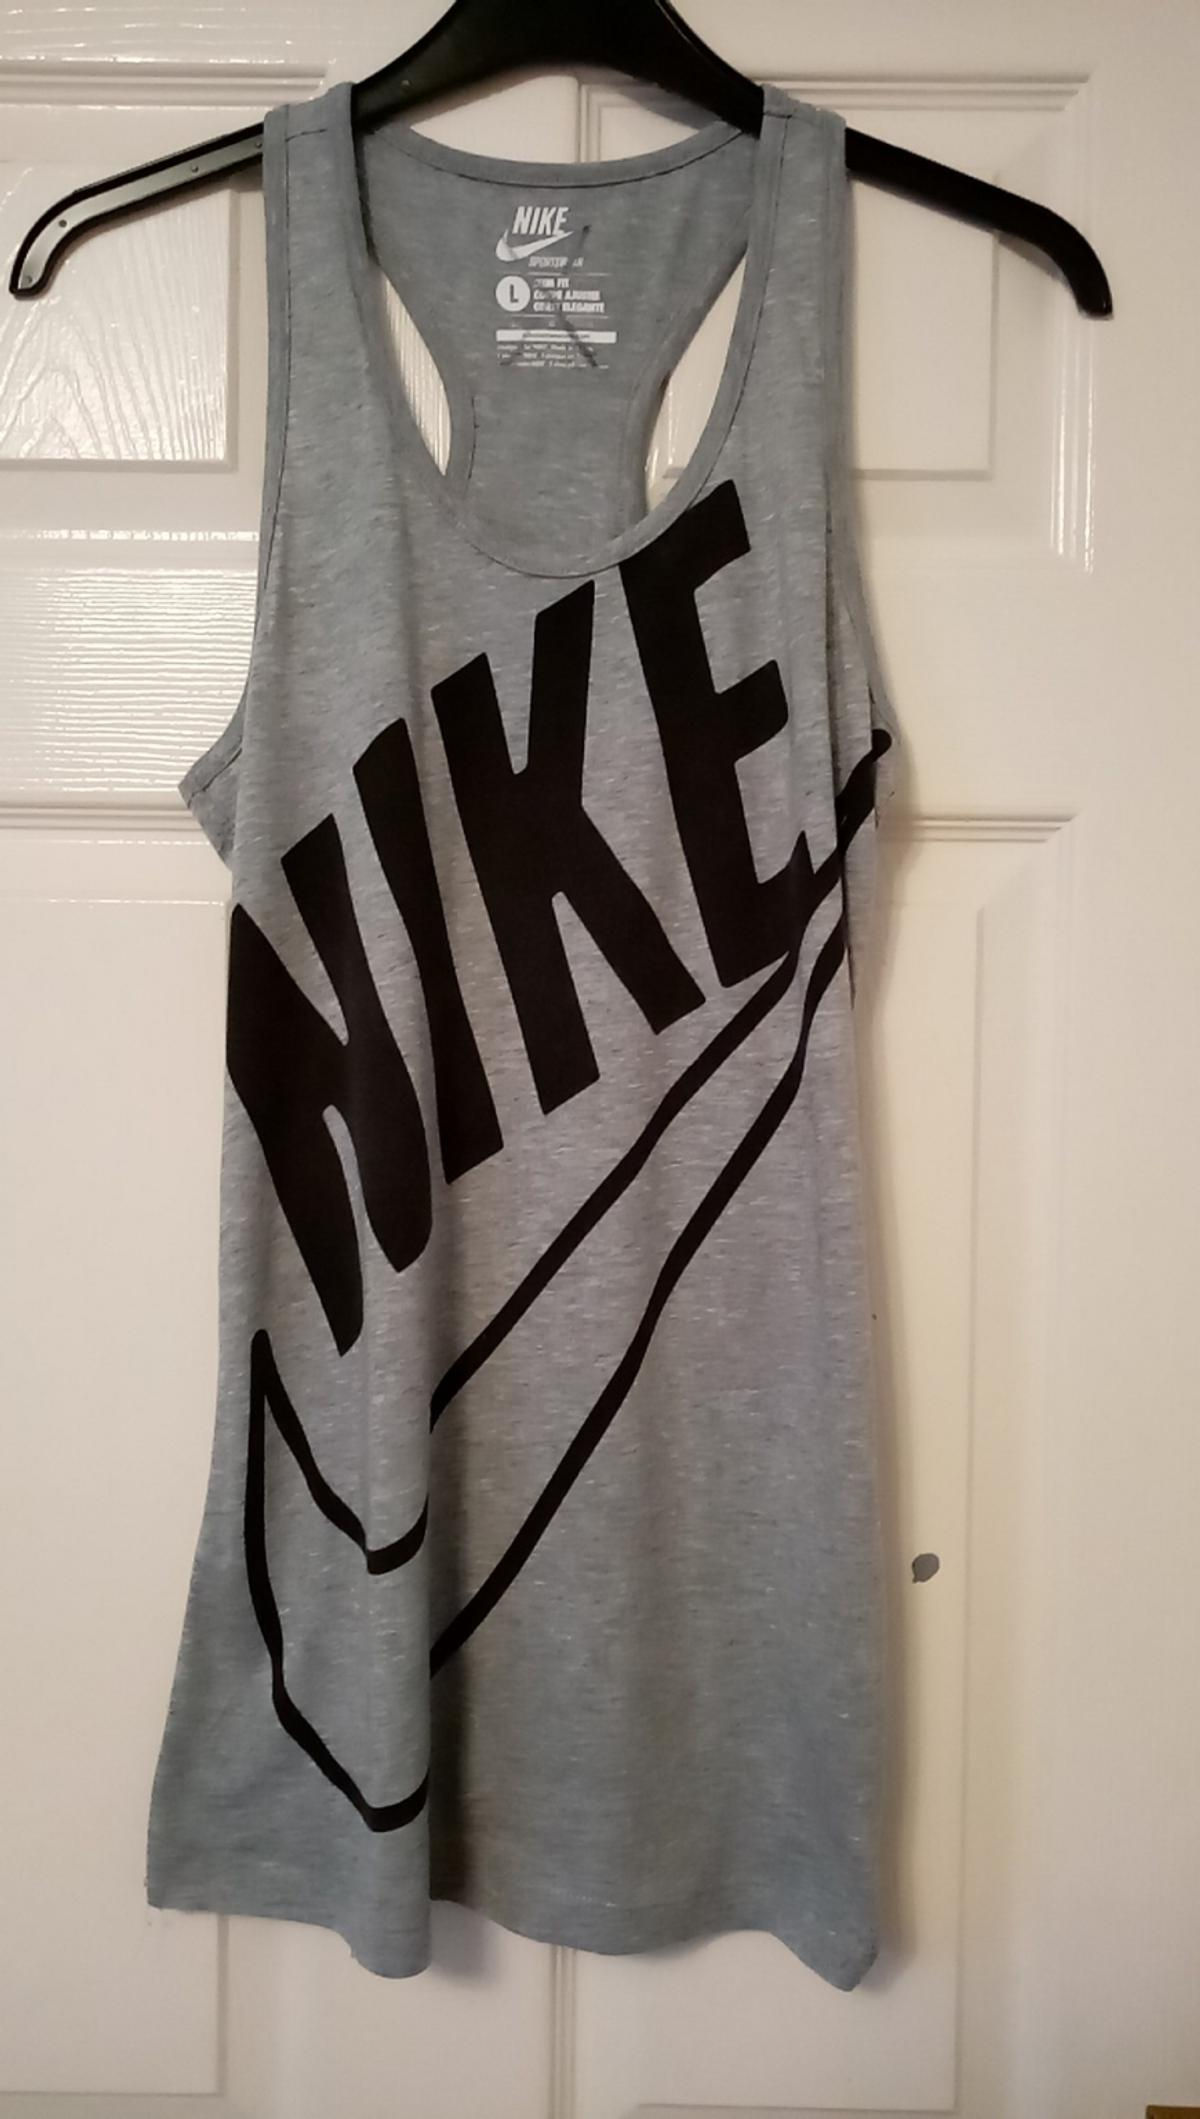 Nike Vest Top good condition size Large,